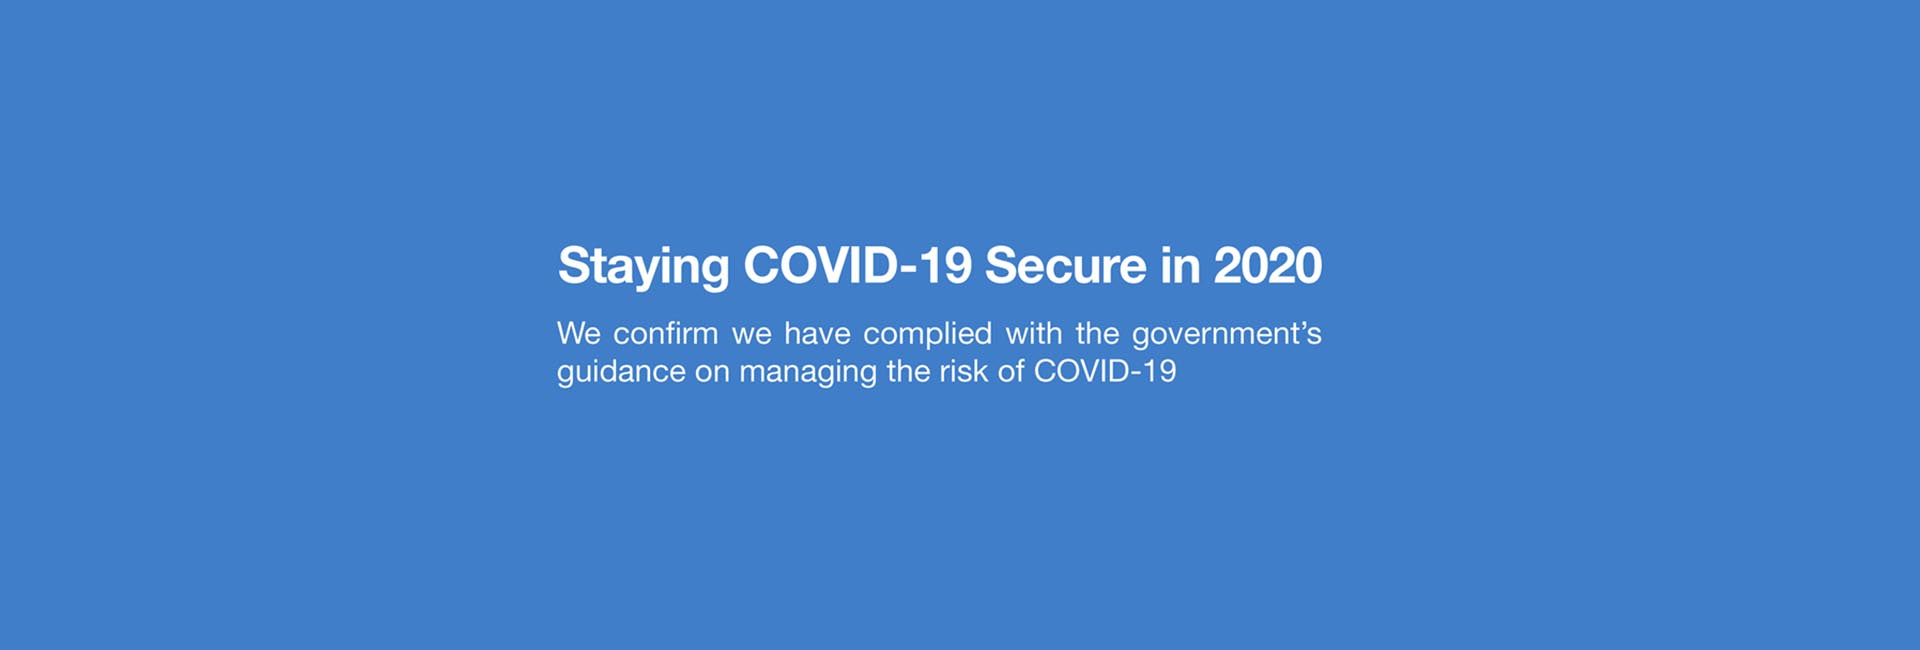 staying covid 19 secure WEB BANNER